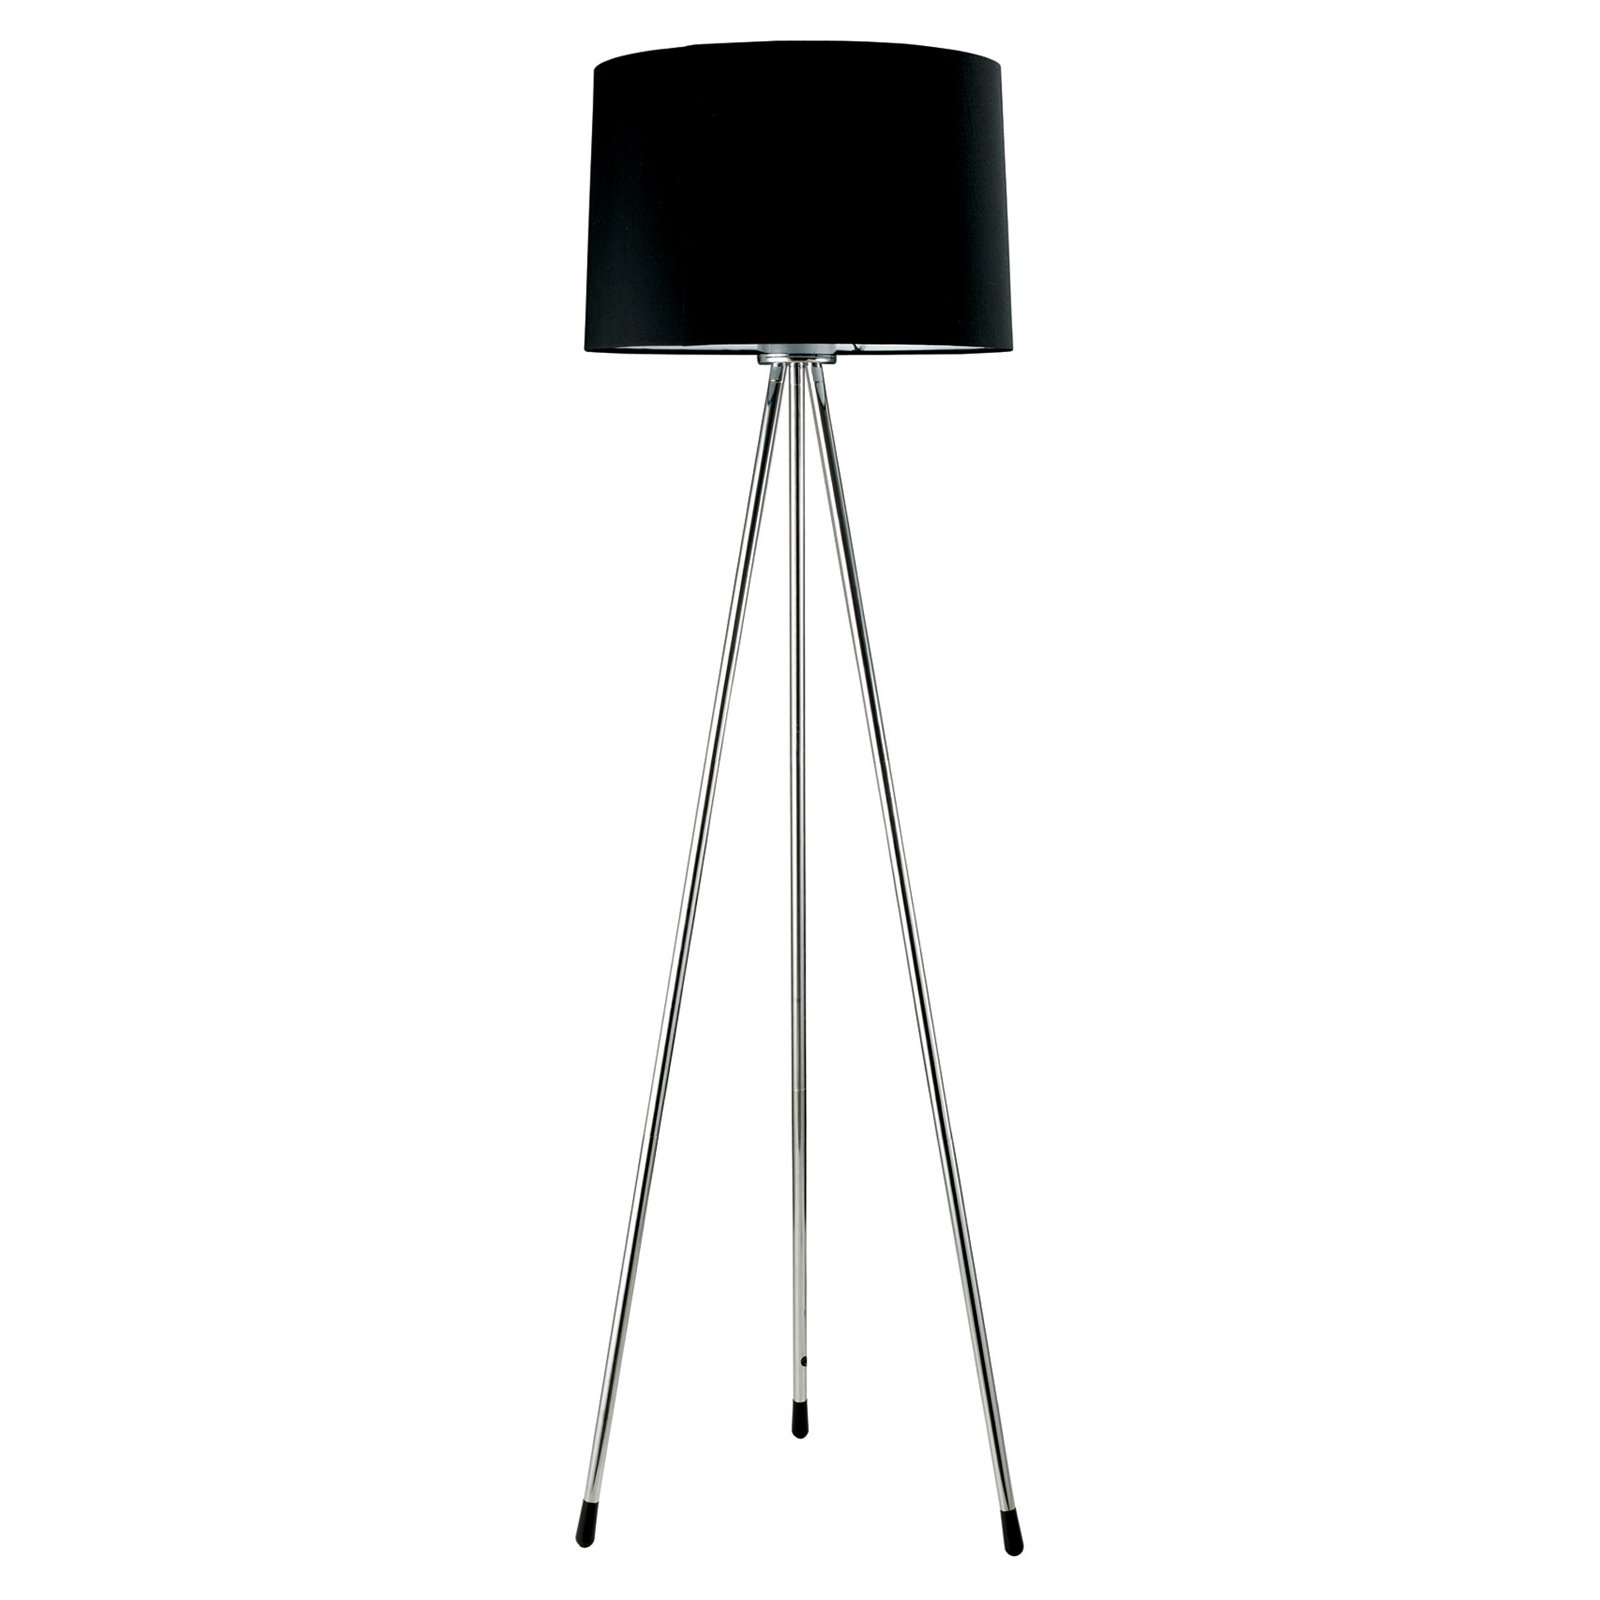 Ore International 3 Leg Floor Lamp Black Walmart